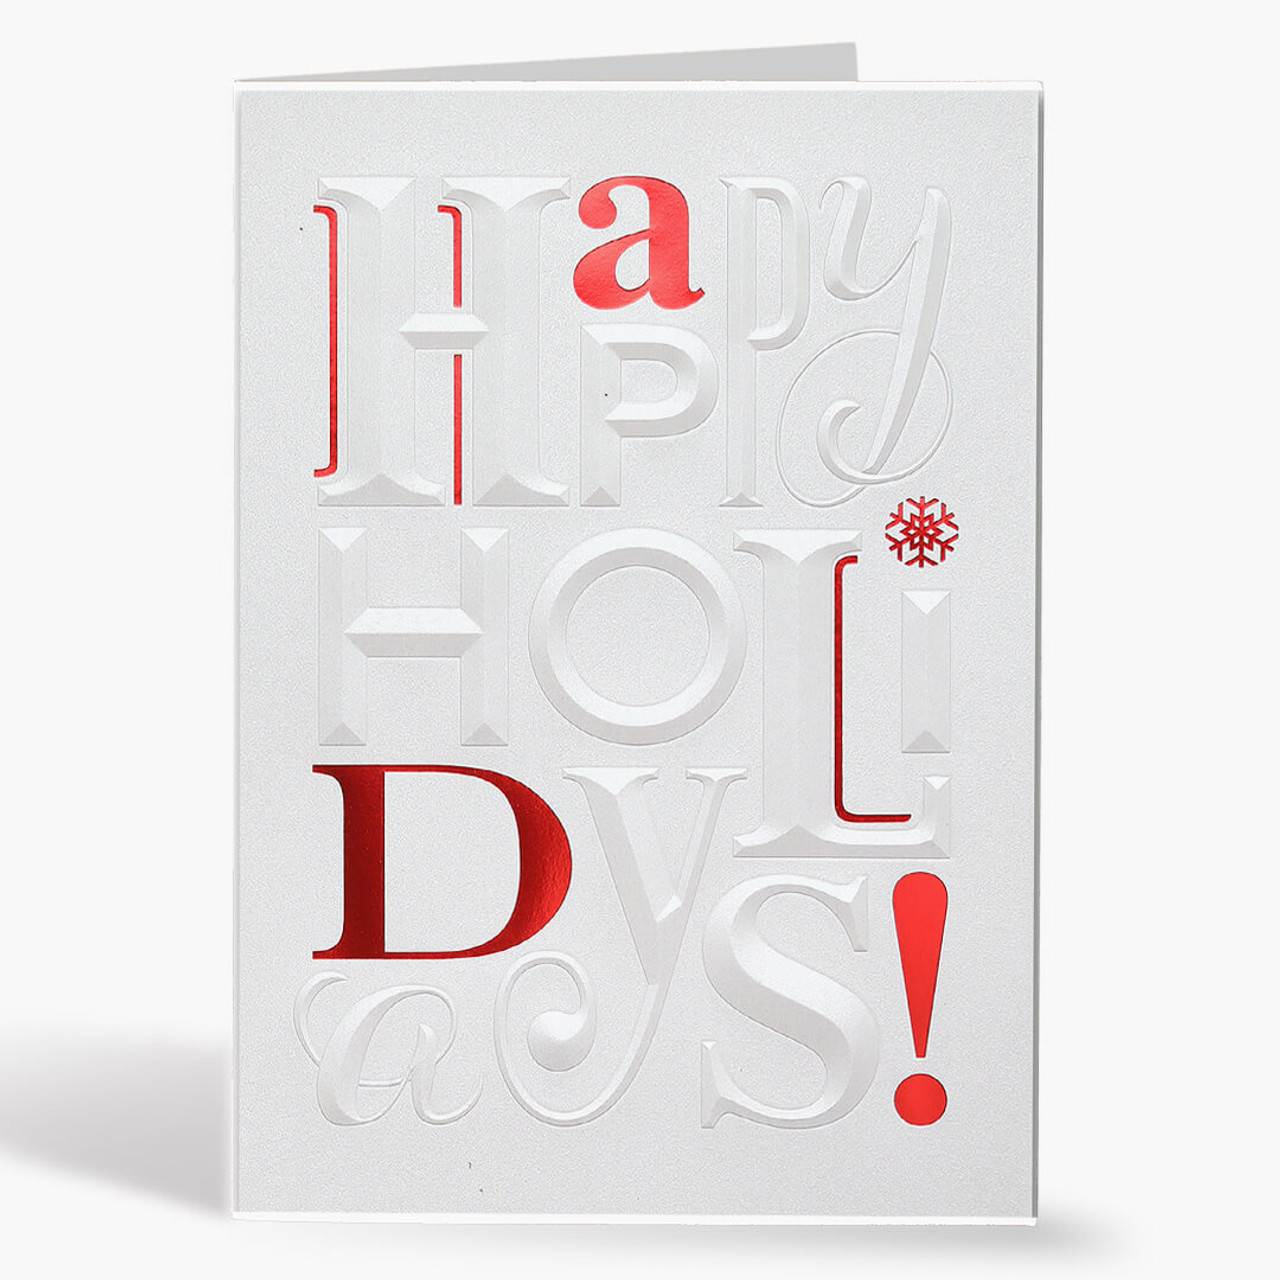 Embossed Holidays Christmas Card